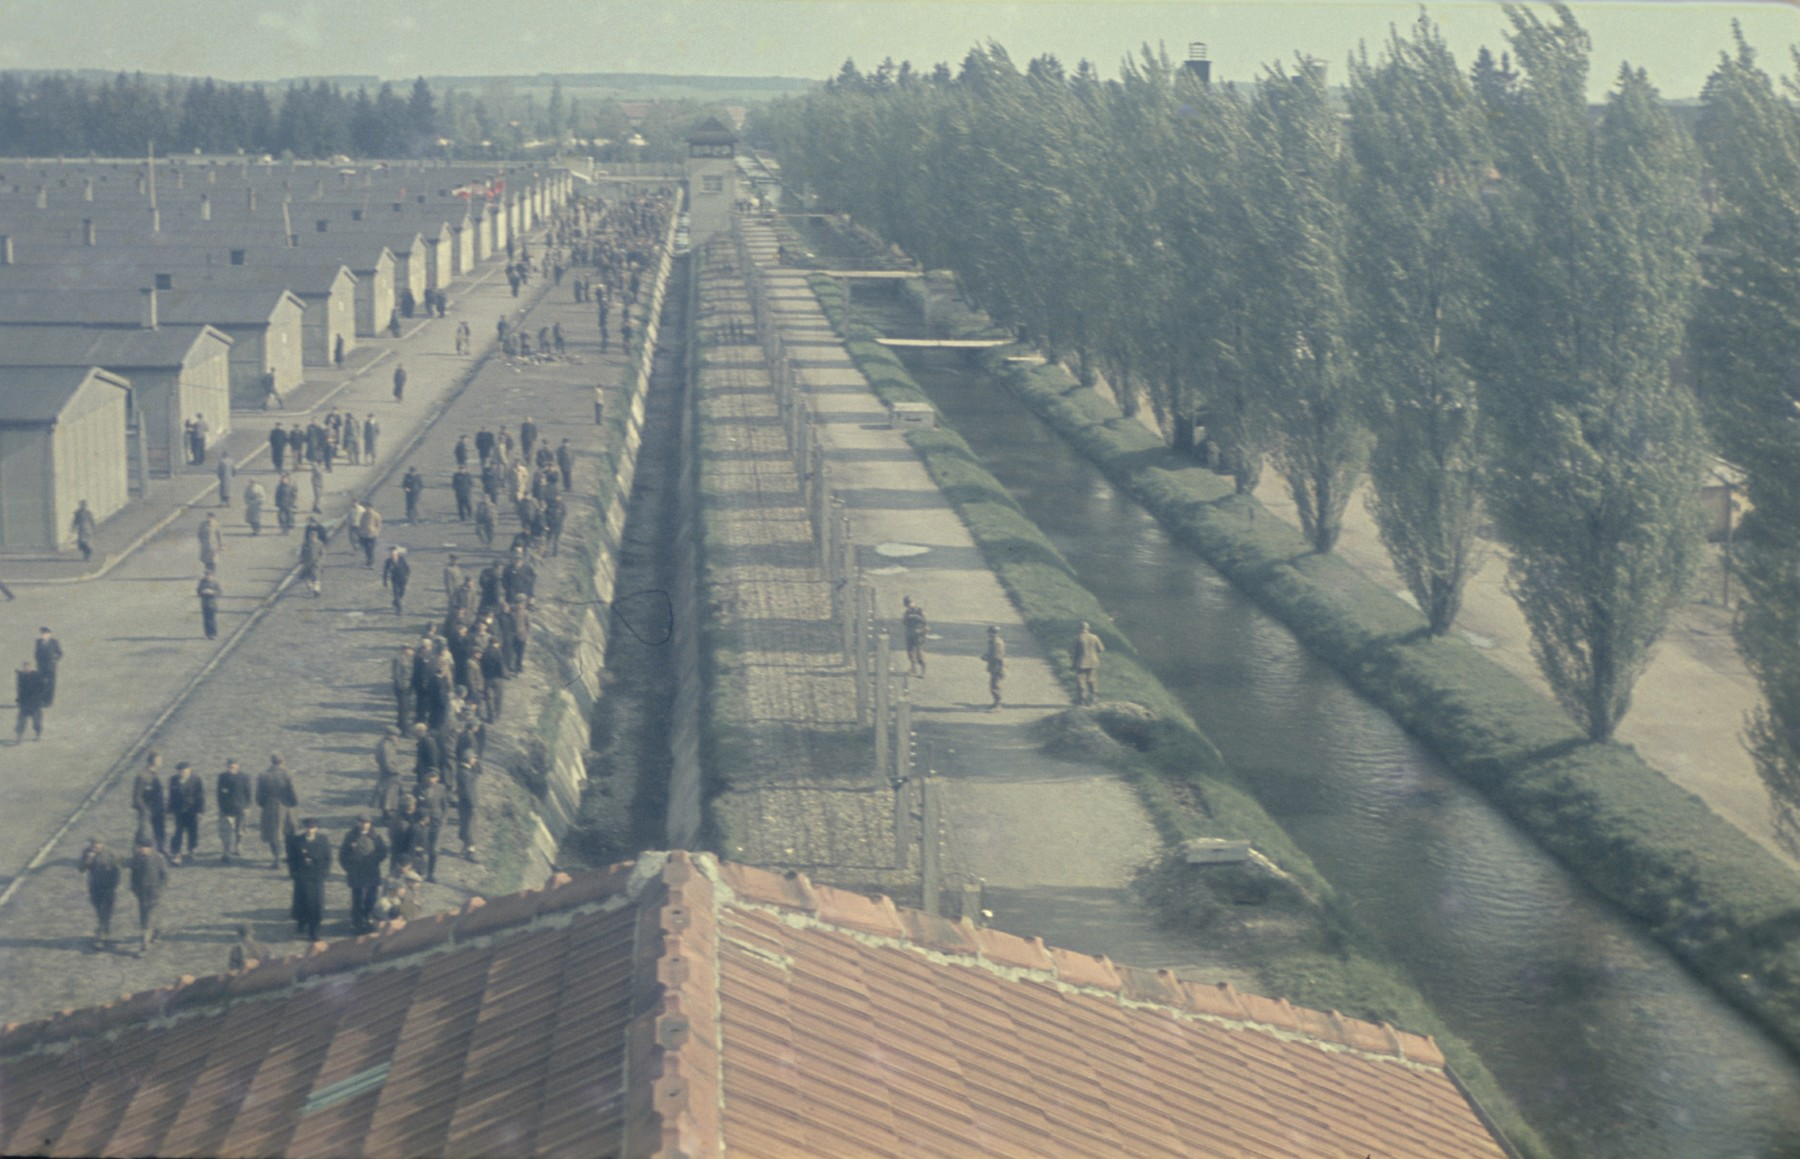 View from above of former prisoners walking along the main street of the newly liberated Dachau concentration camp parallel to the moats and barbed wire fence.